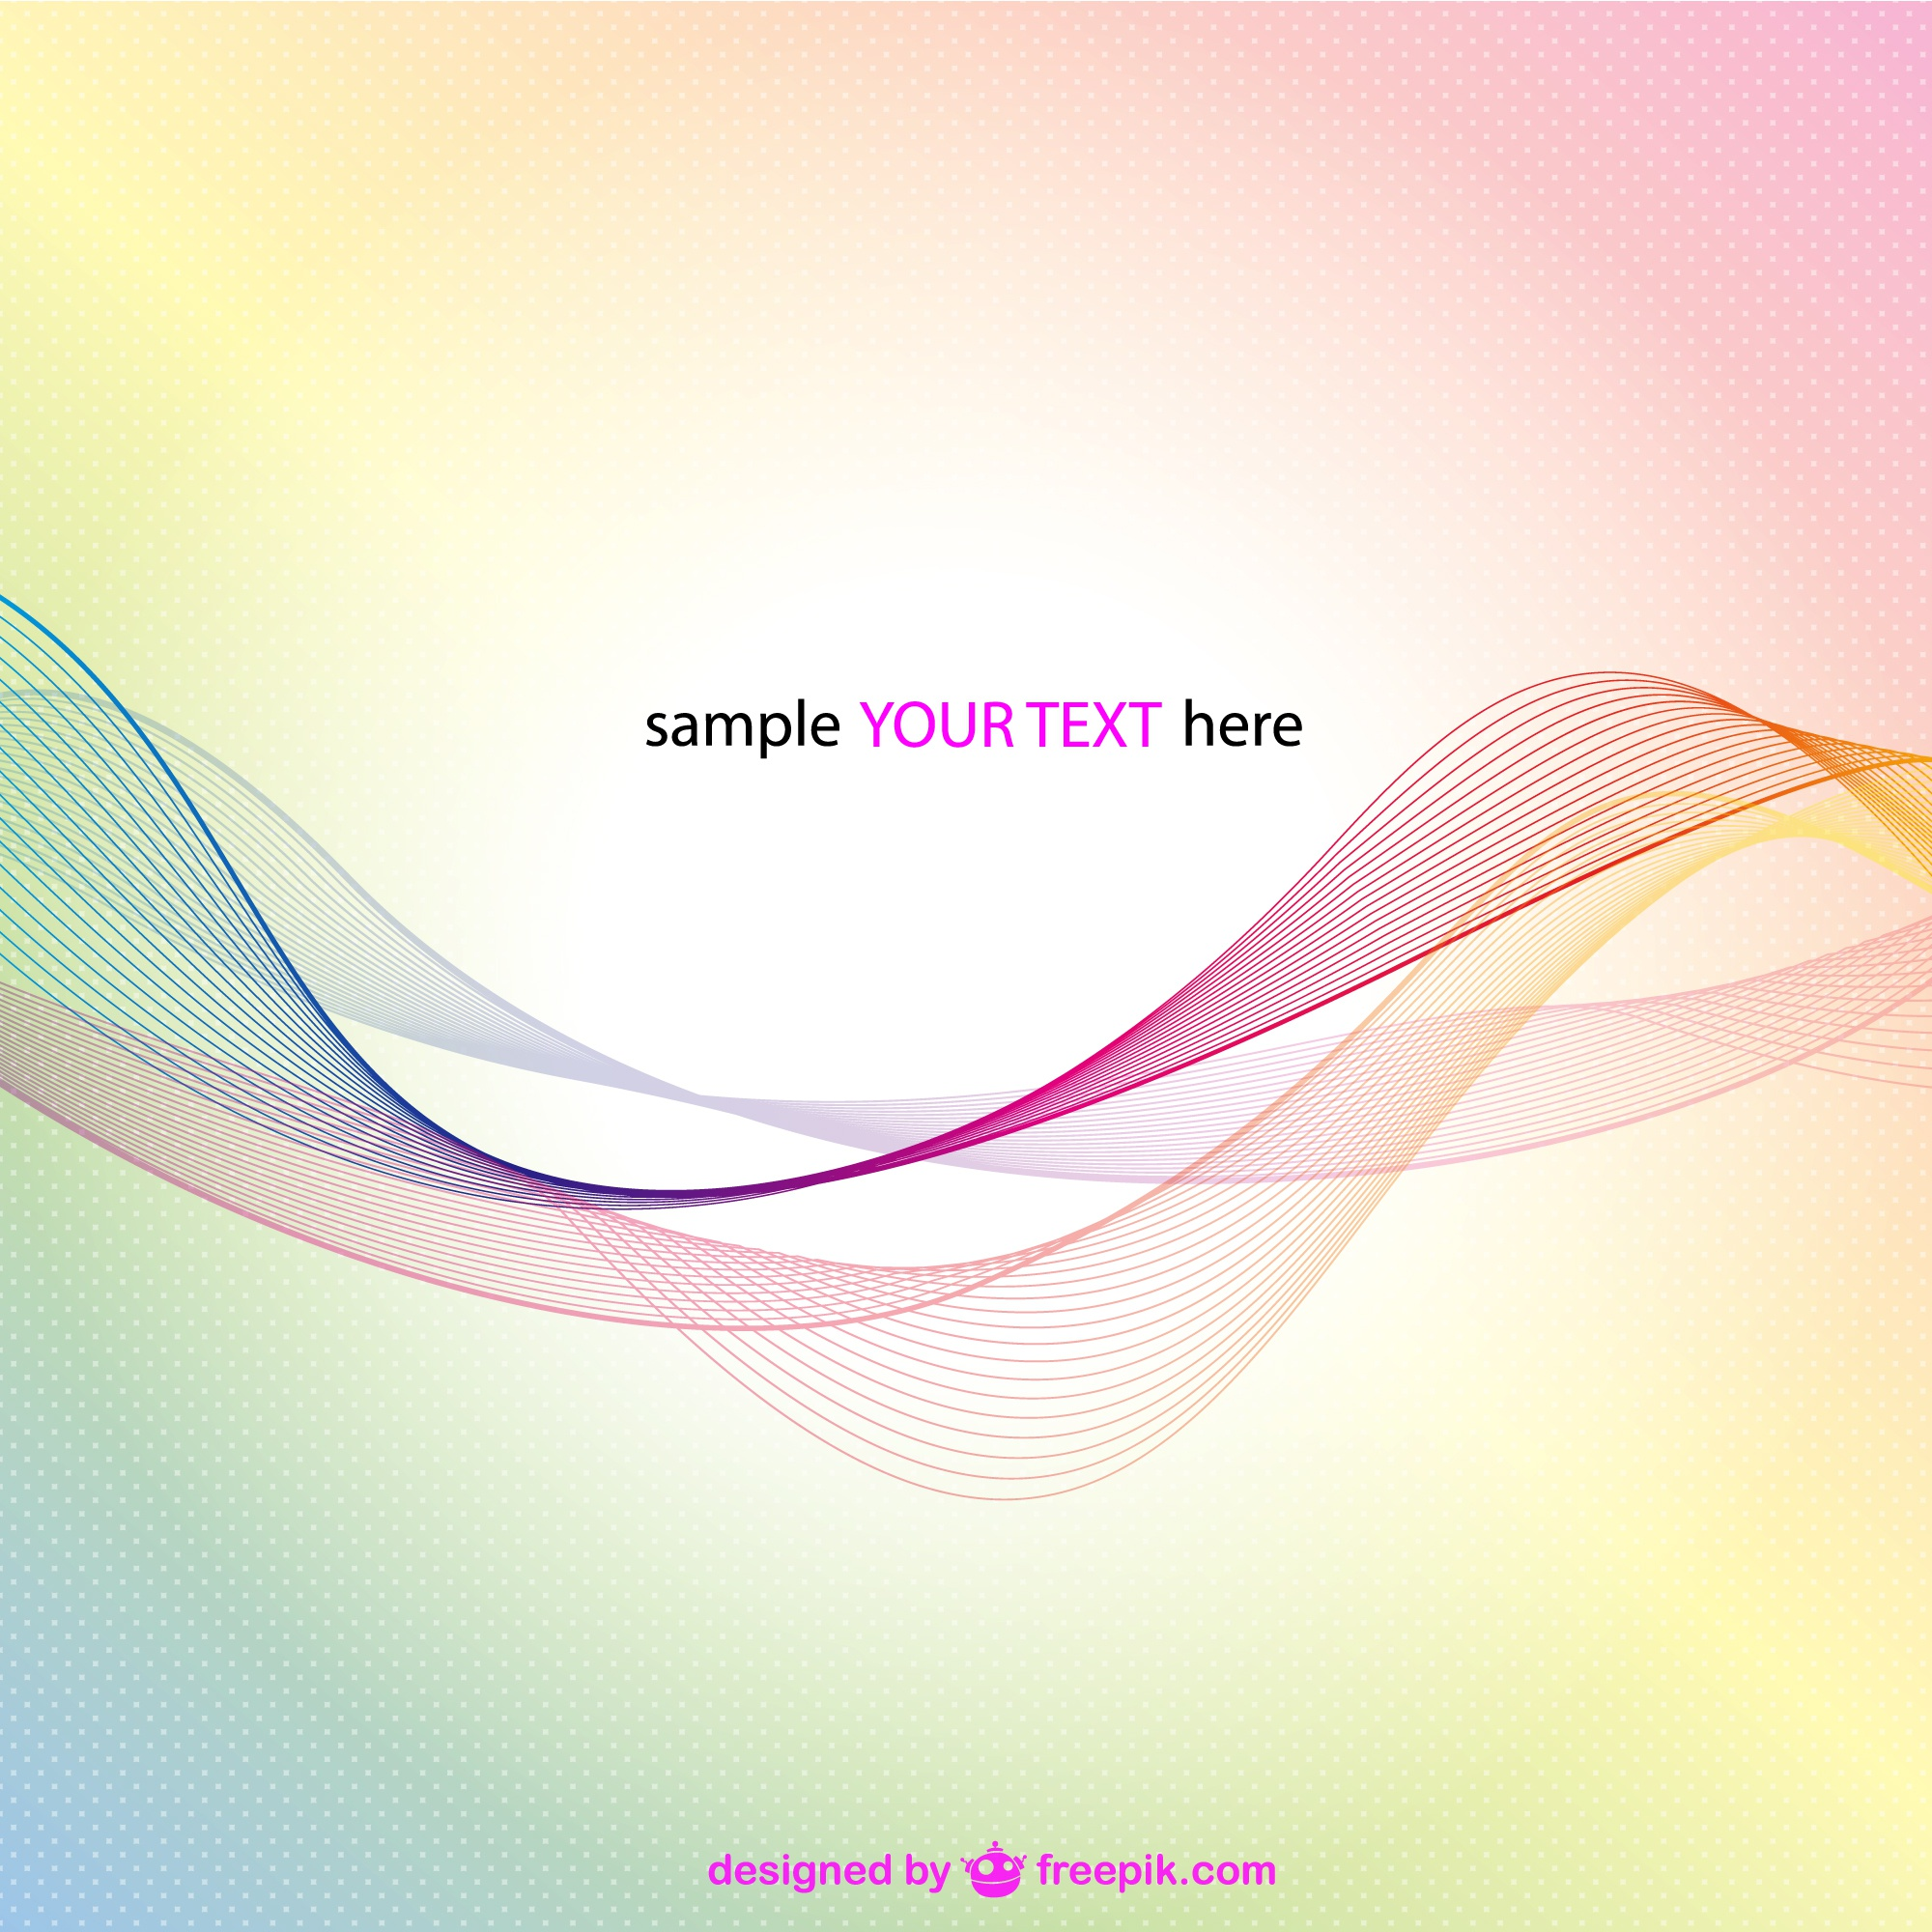 Free vector abstract image